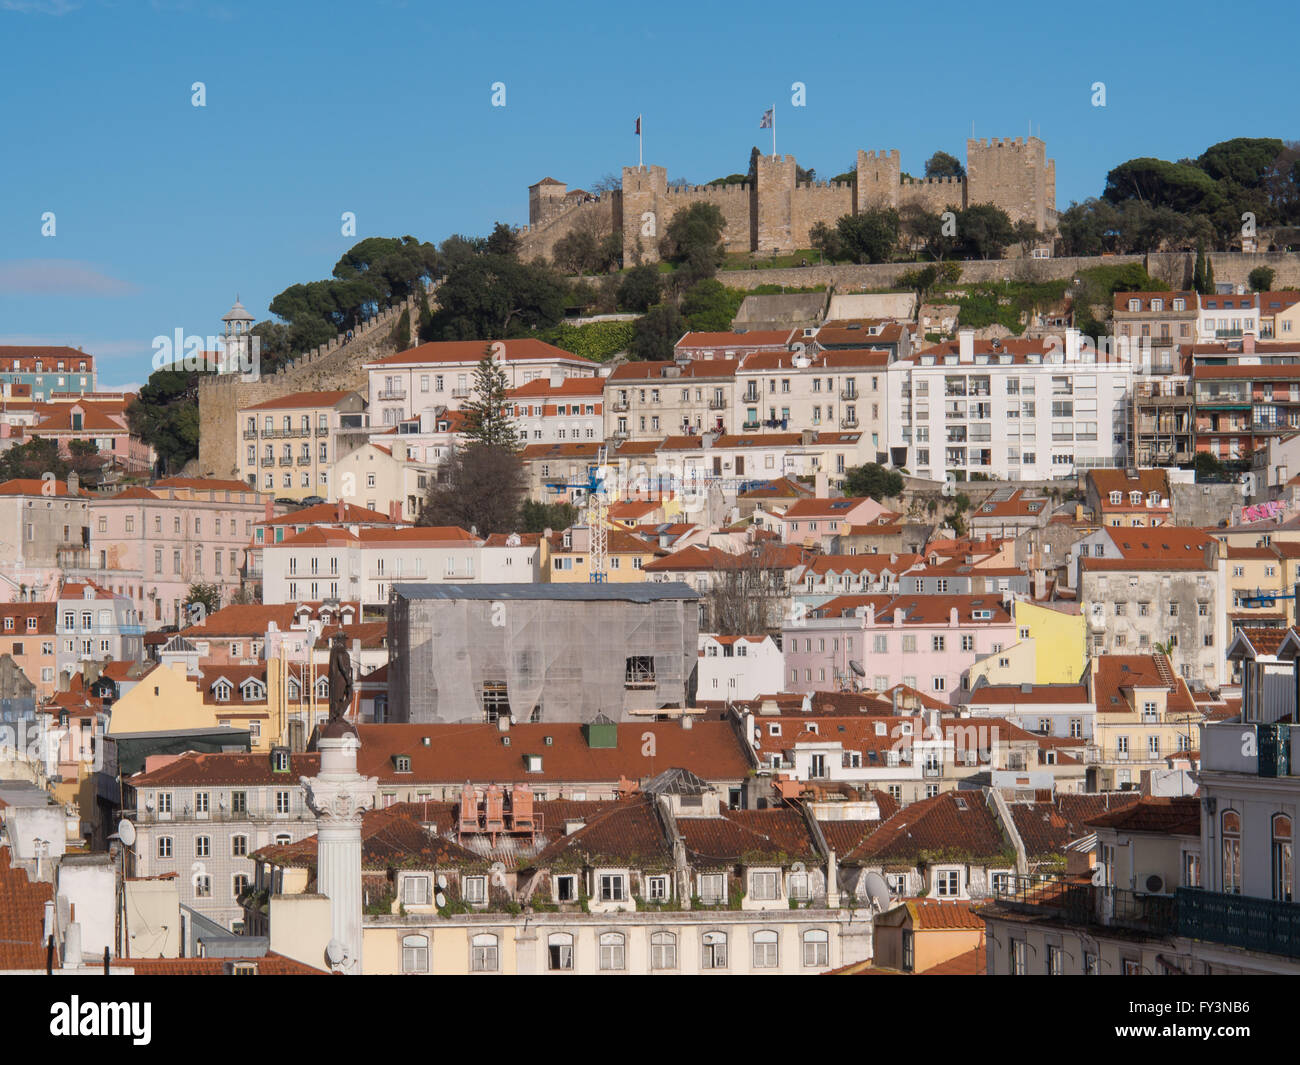 View of the city of Lisbon. Sao Jorge Castle, Alfama, Mouraria - Stock Image